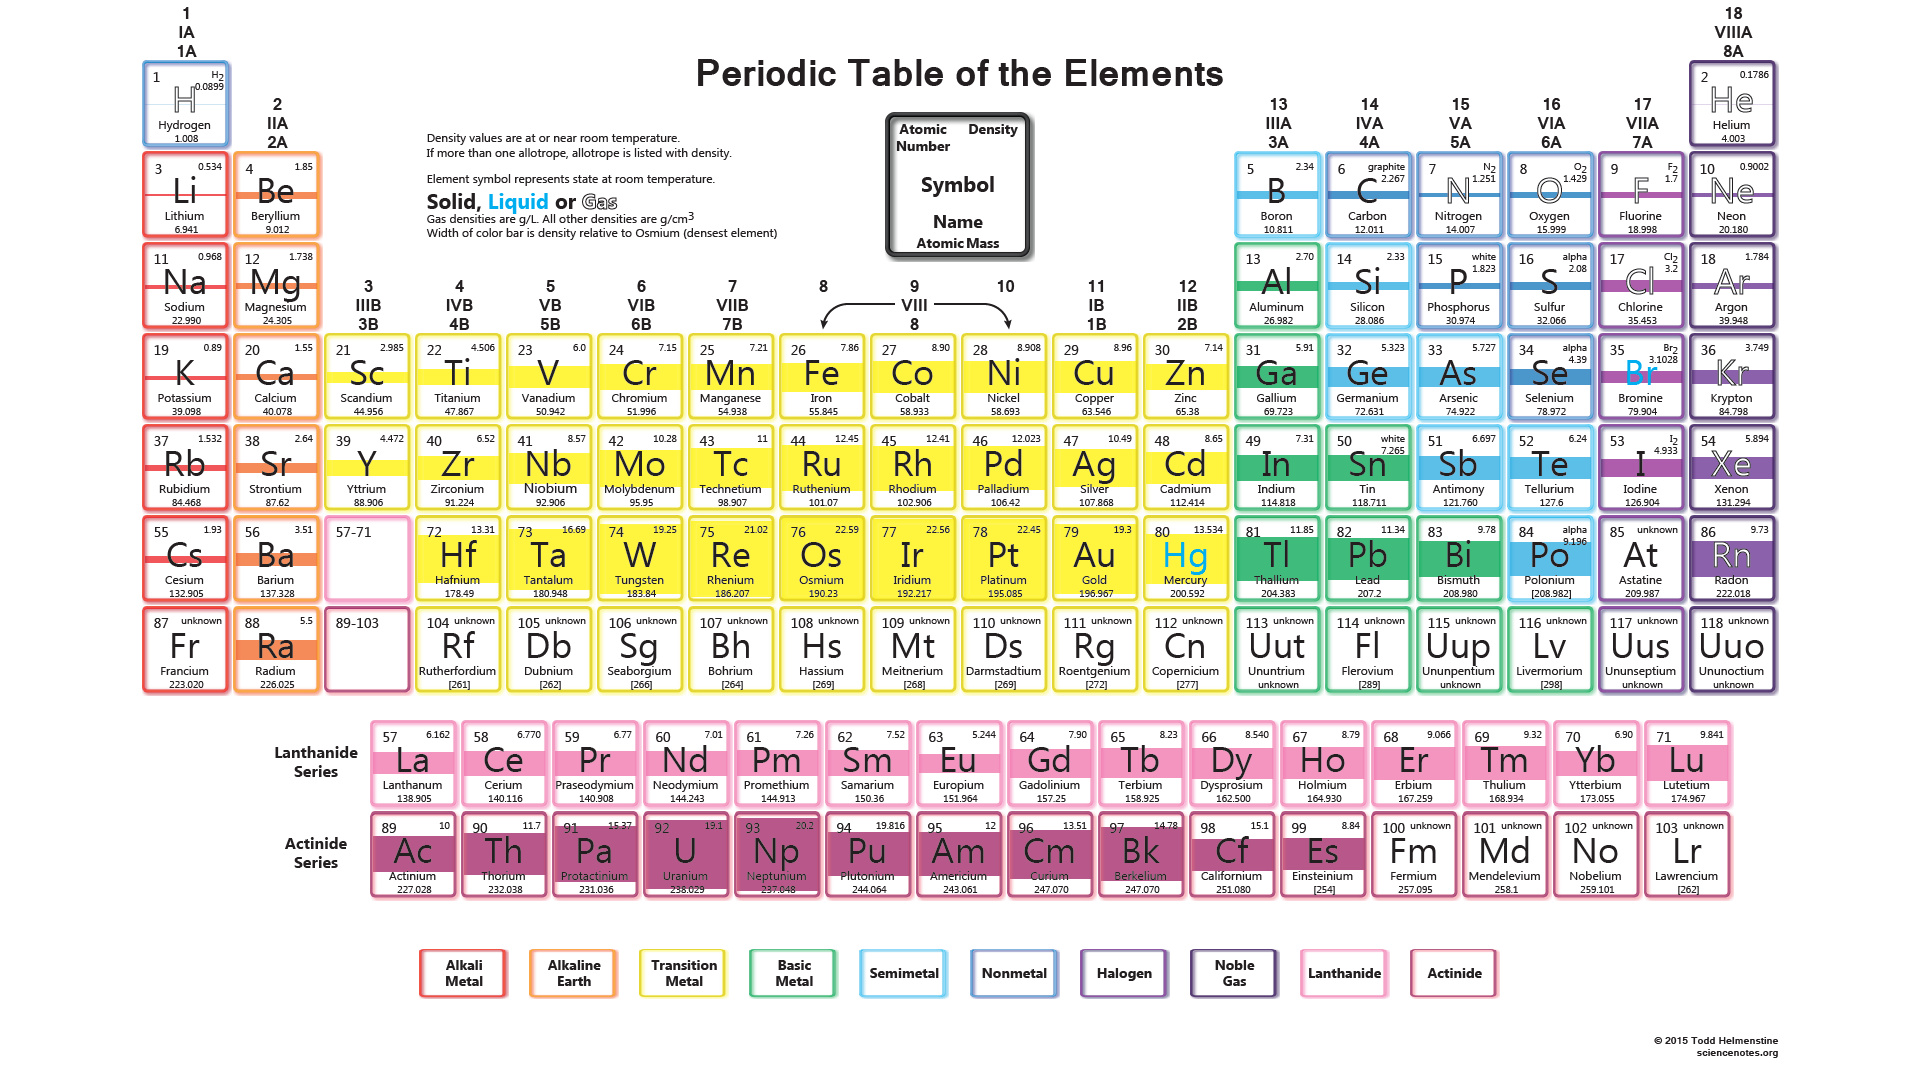 Periodic table wallpaper hd density periodic table wallpaper density gamestrikefo Choice Image